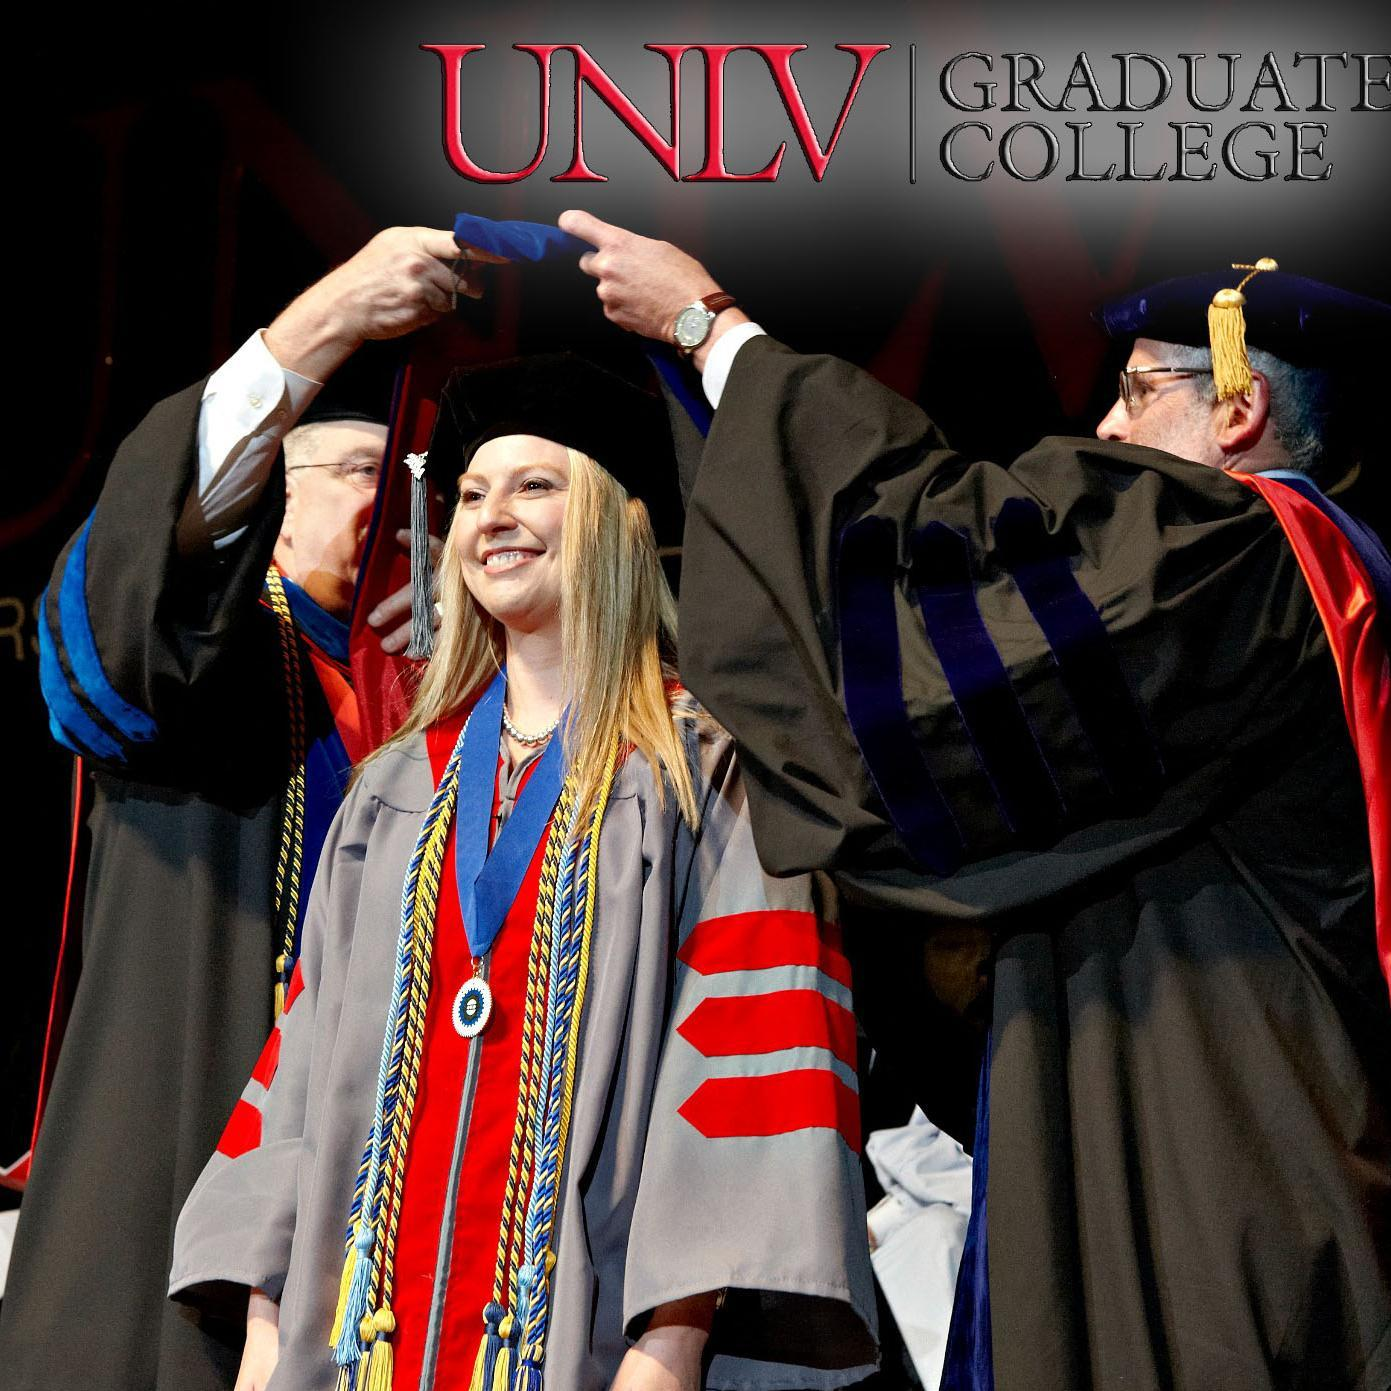 Unlv Grad College Unlv Gc Twitter The university of houston recognizes that commencement is a joyous time and an incredible undergraduate students who complete their degree requirements will graduate with the stated academic honors if they achieve the following. unlv grad college unlv gc twitter